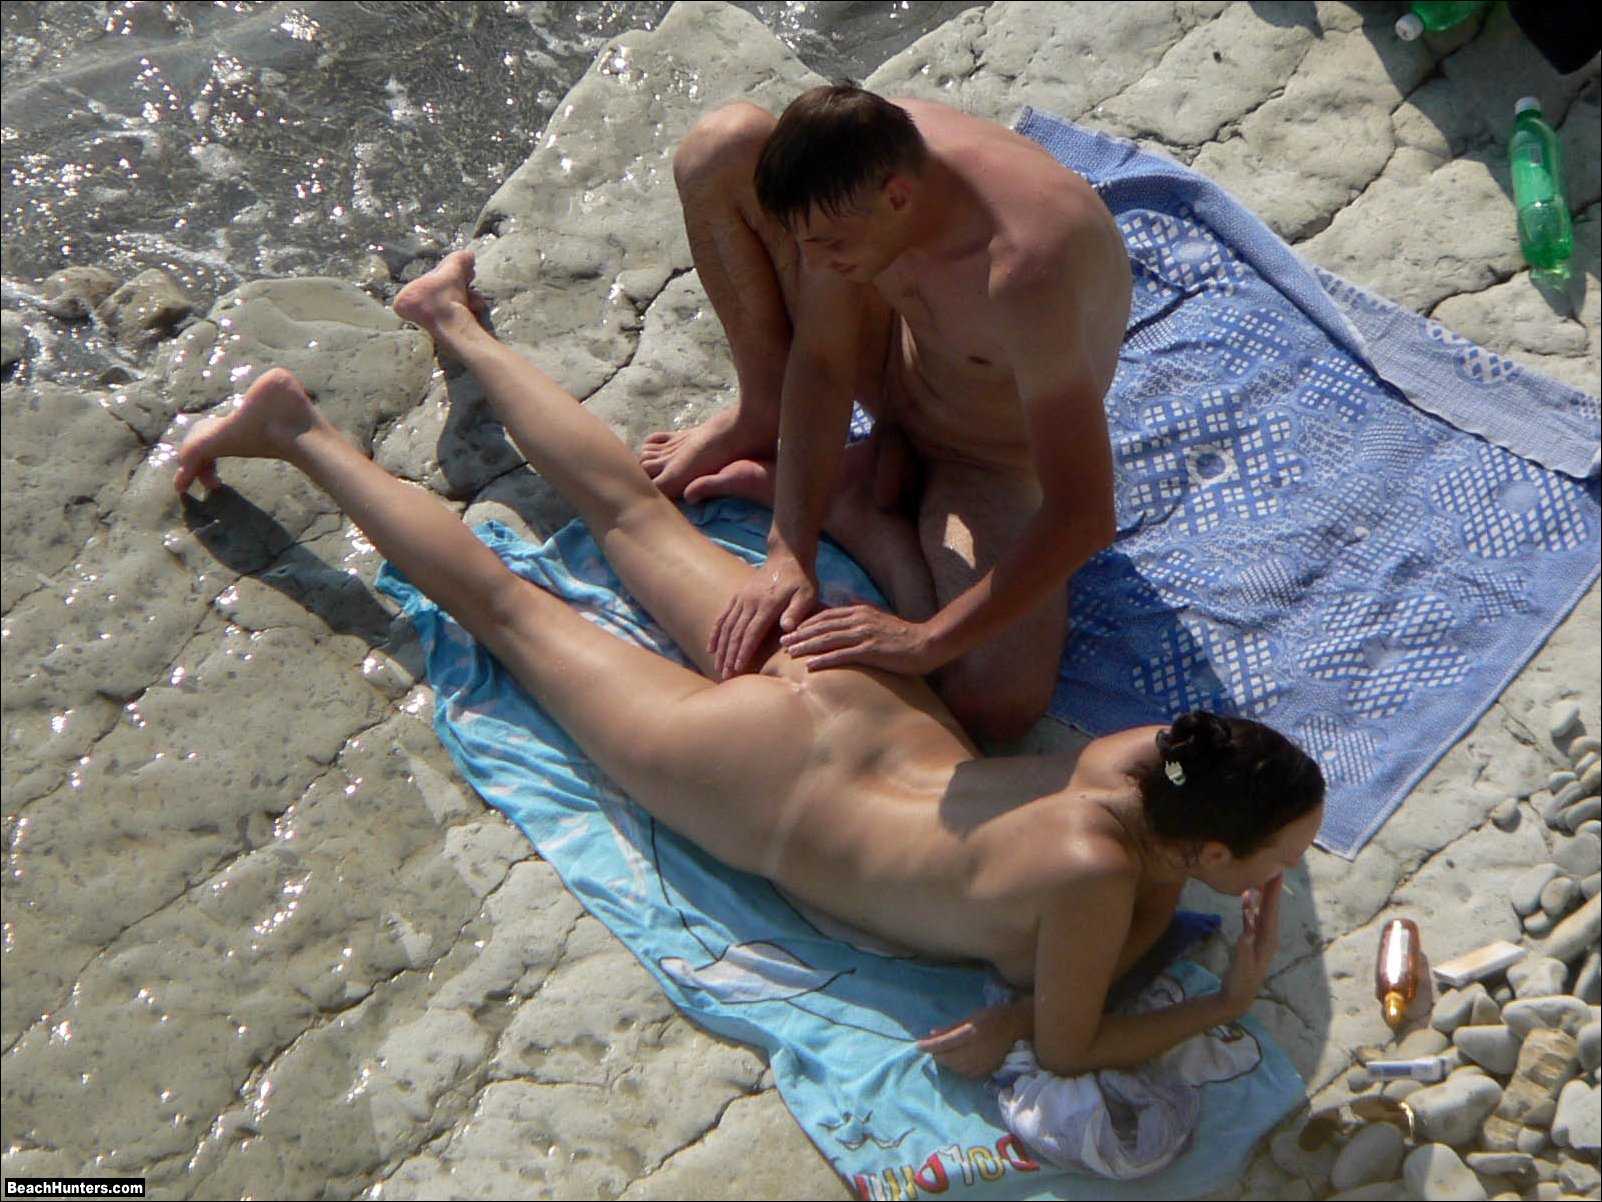 Diabettes code strip